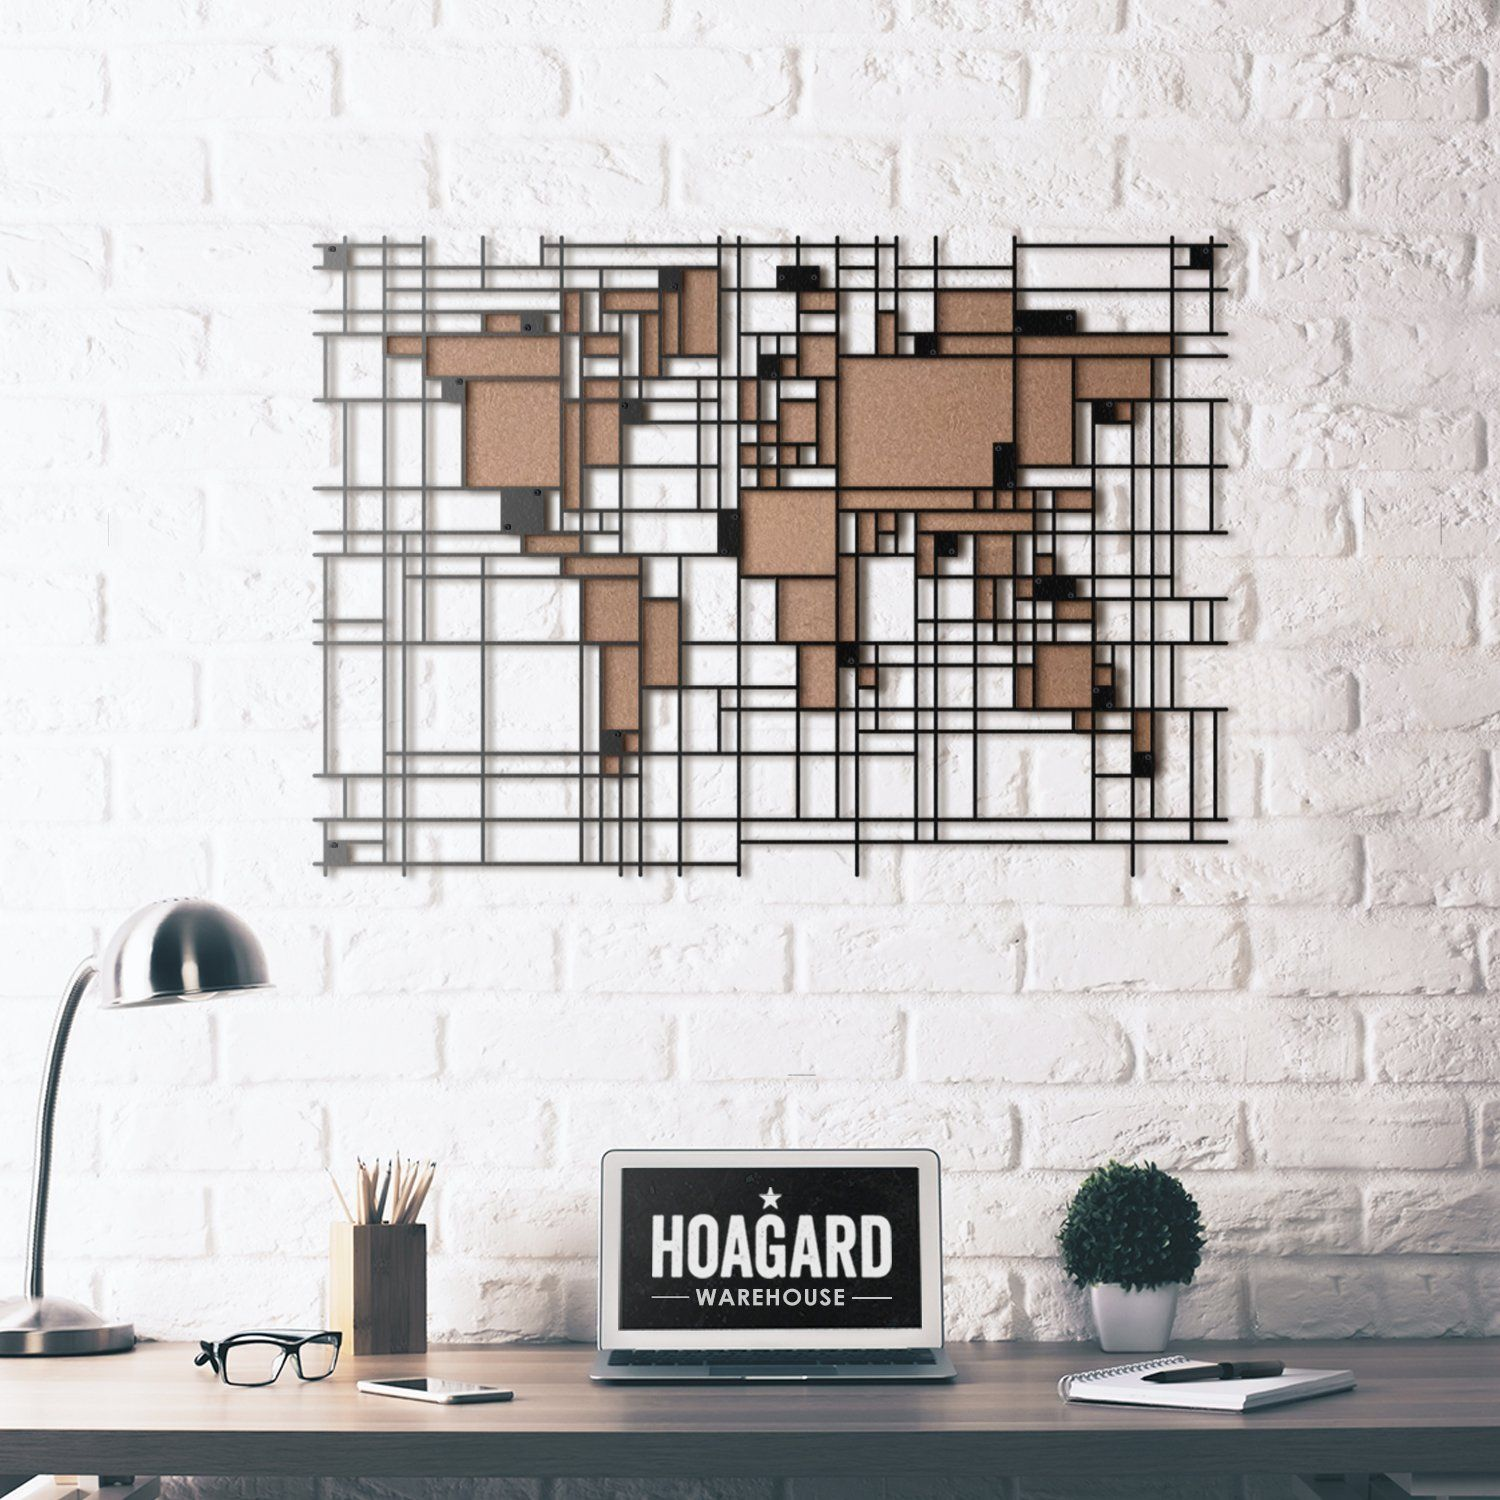 LIMITED PRODUCT) - Mondrian World Map | Mondrian, Metal wall art and ...